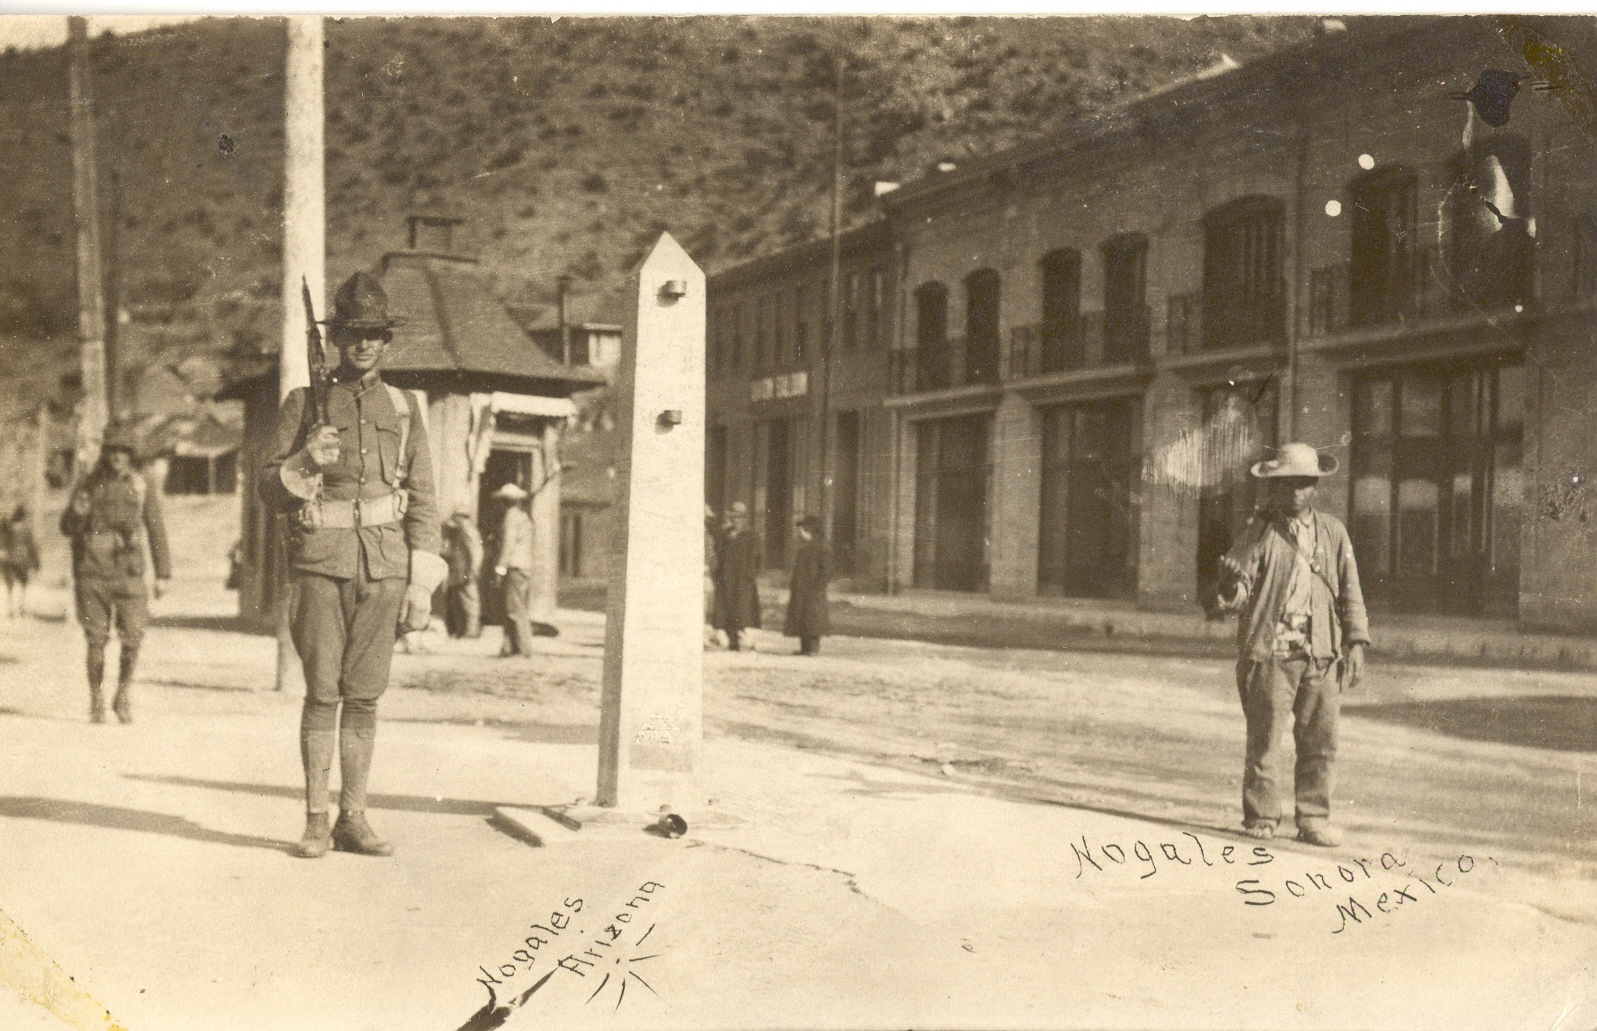 Border, Nogales, Arizona 1910-1920